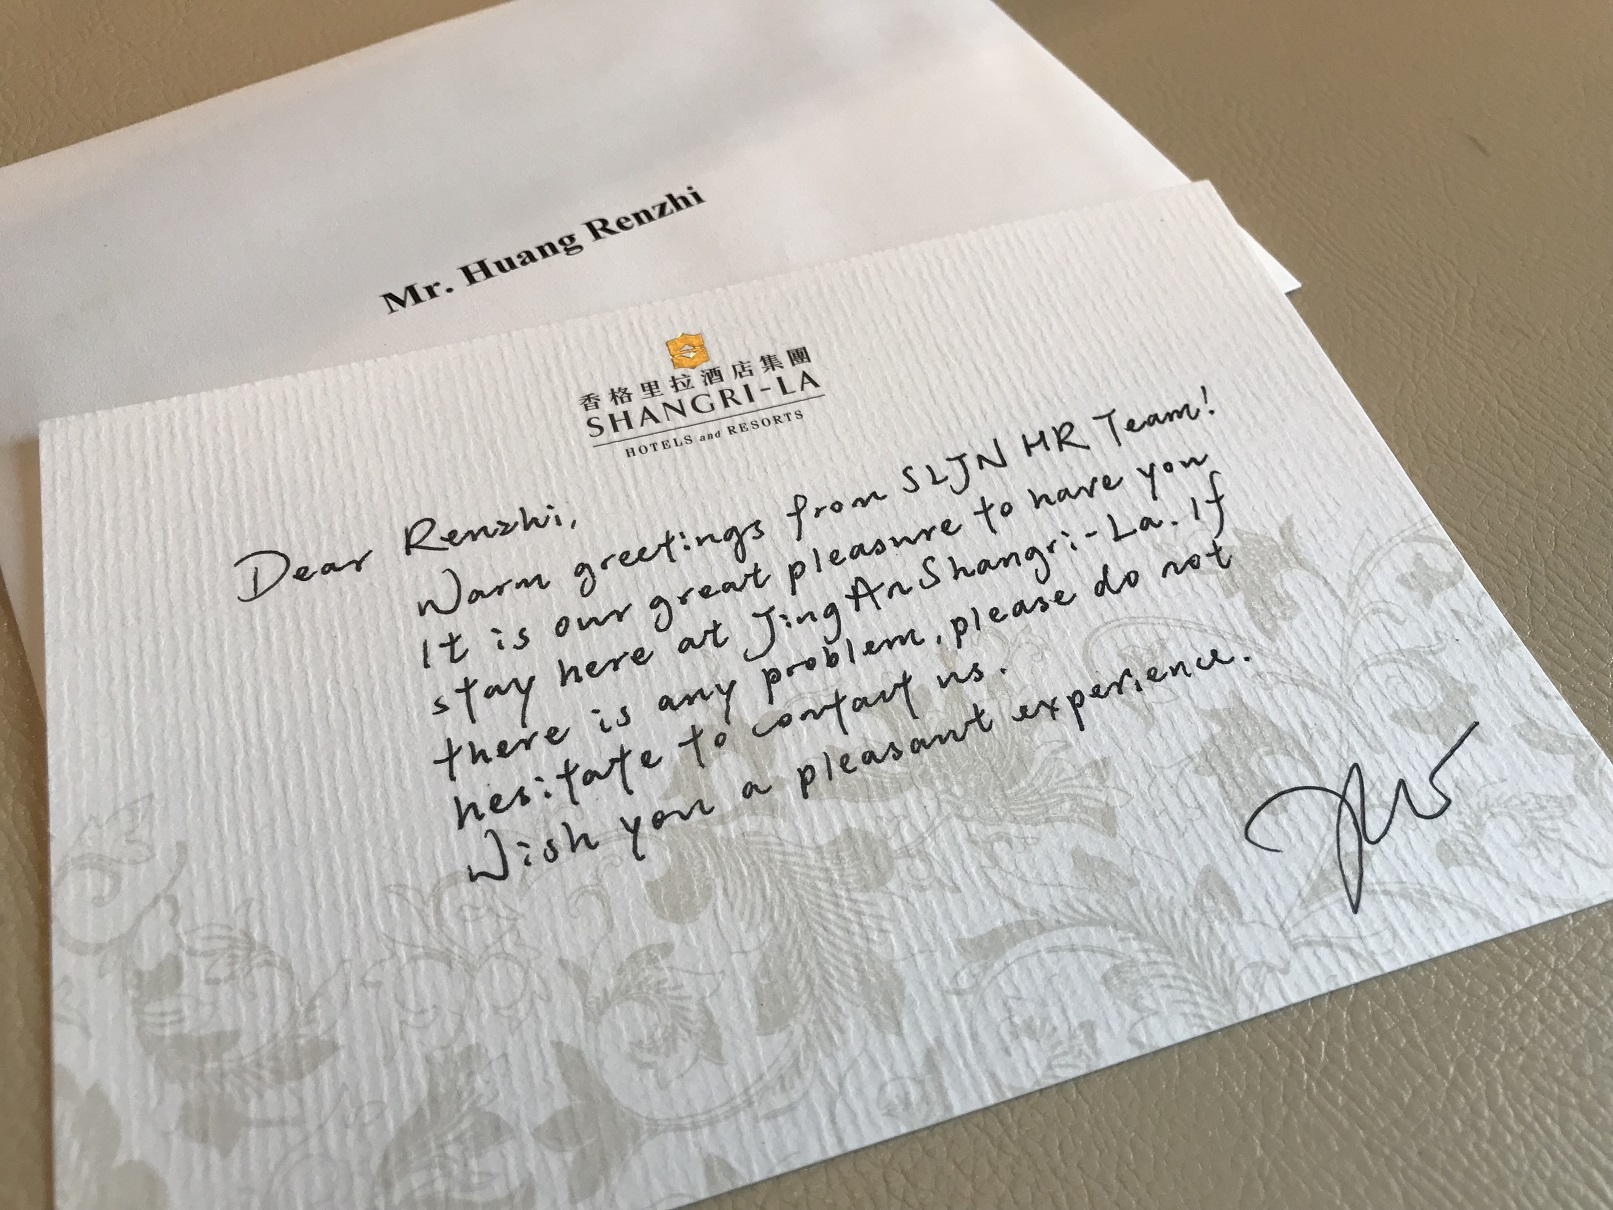 Welcome letter...